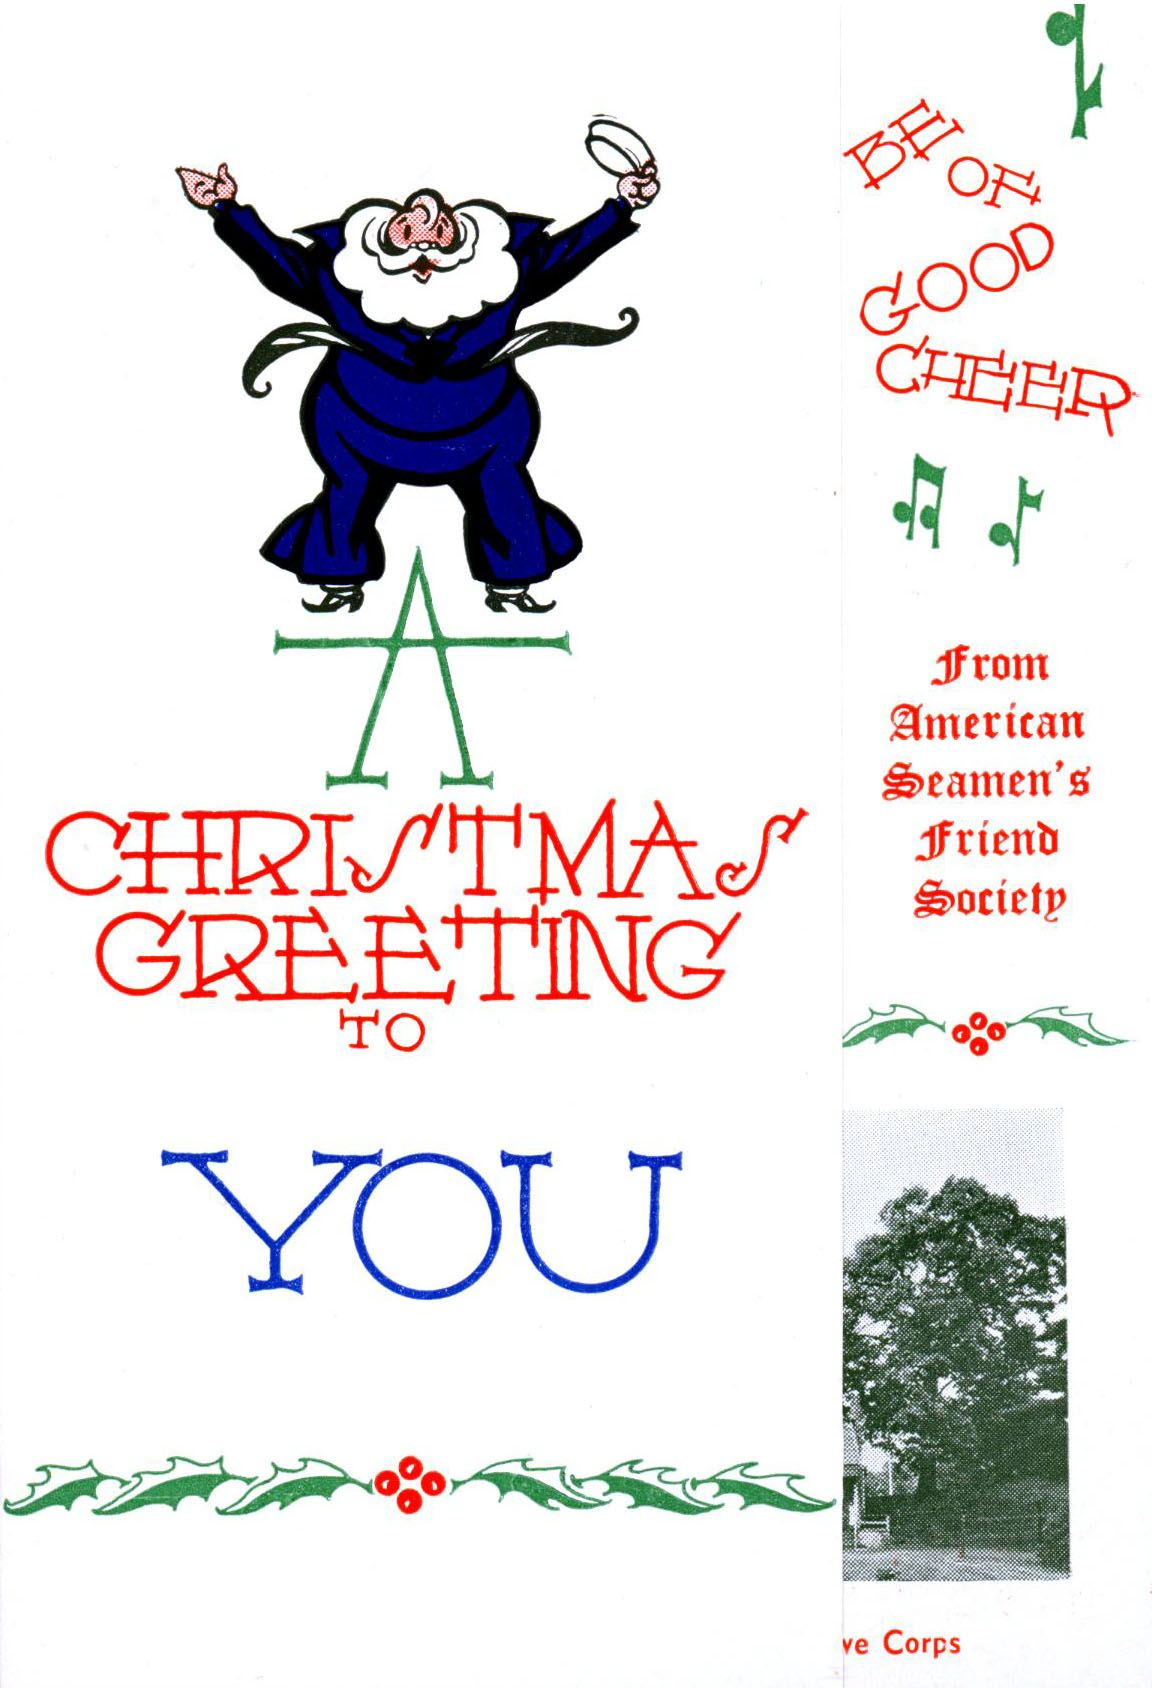 Merry Christmas (With images) Merry christmas, Good